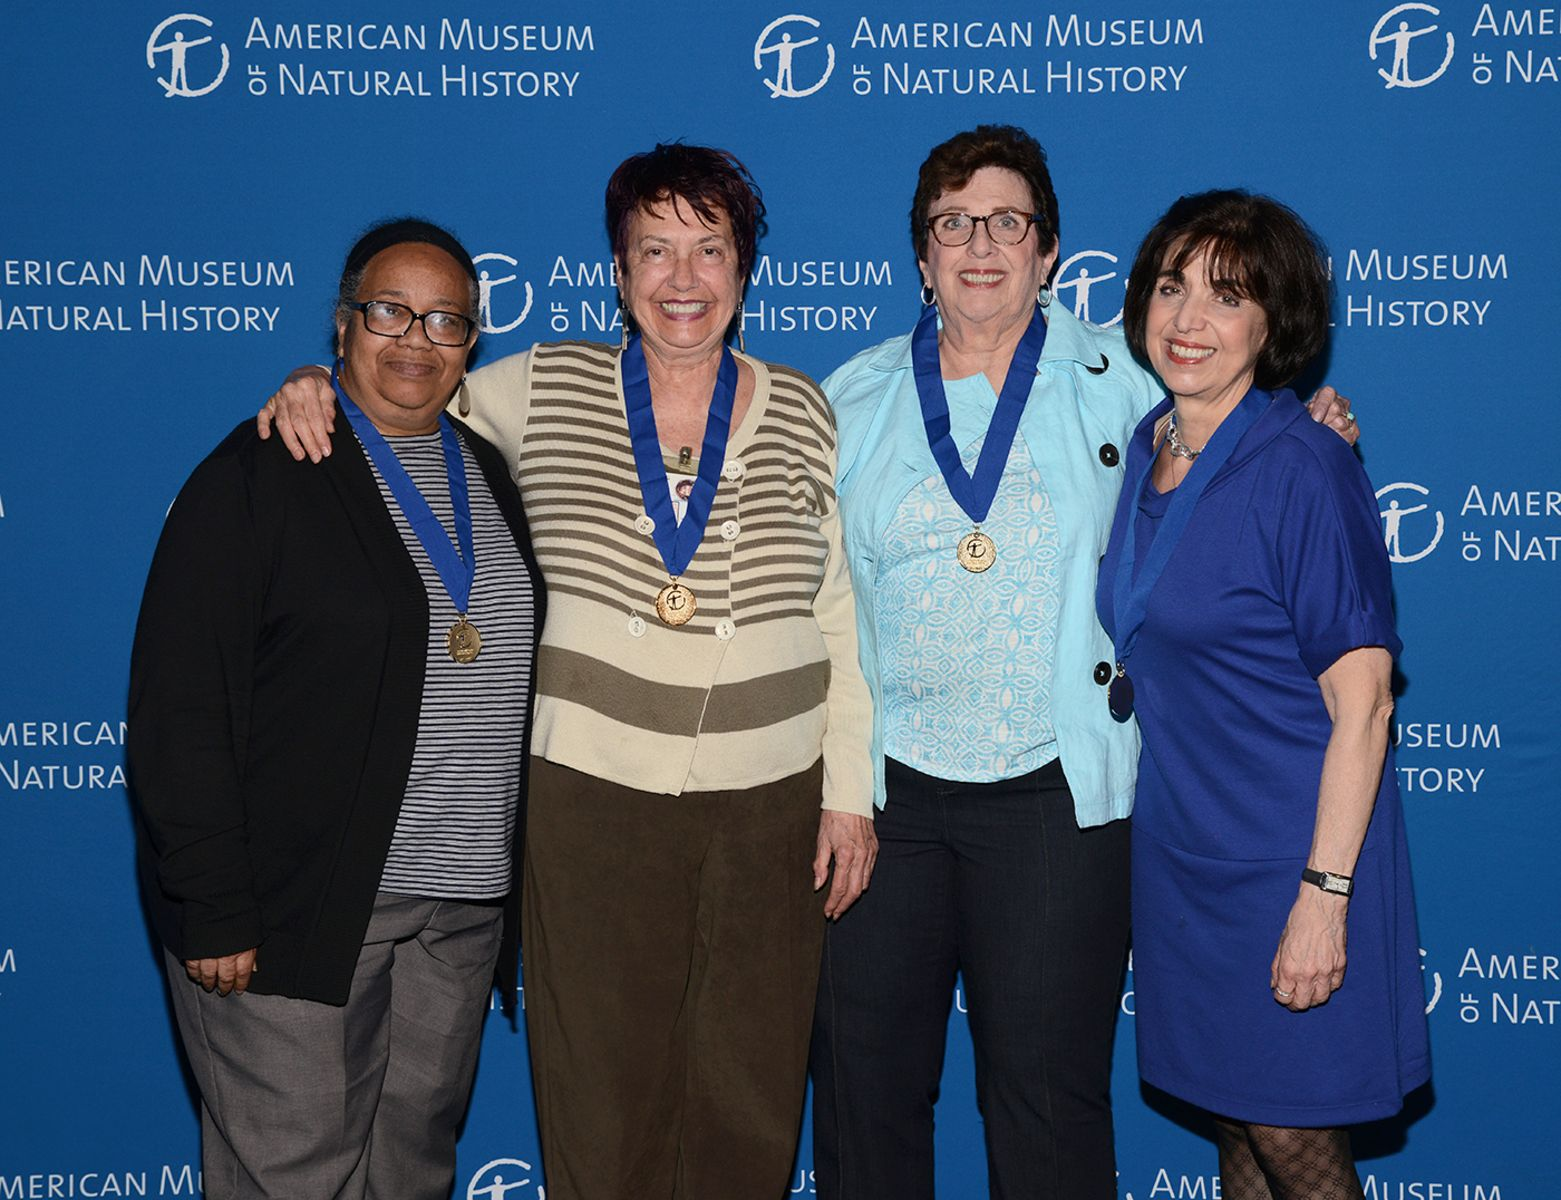 Four smiling women stand with their arms around each other, wearing medals on ribbons around their necks.